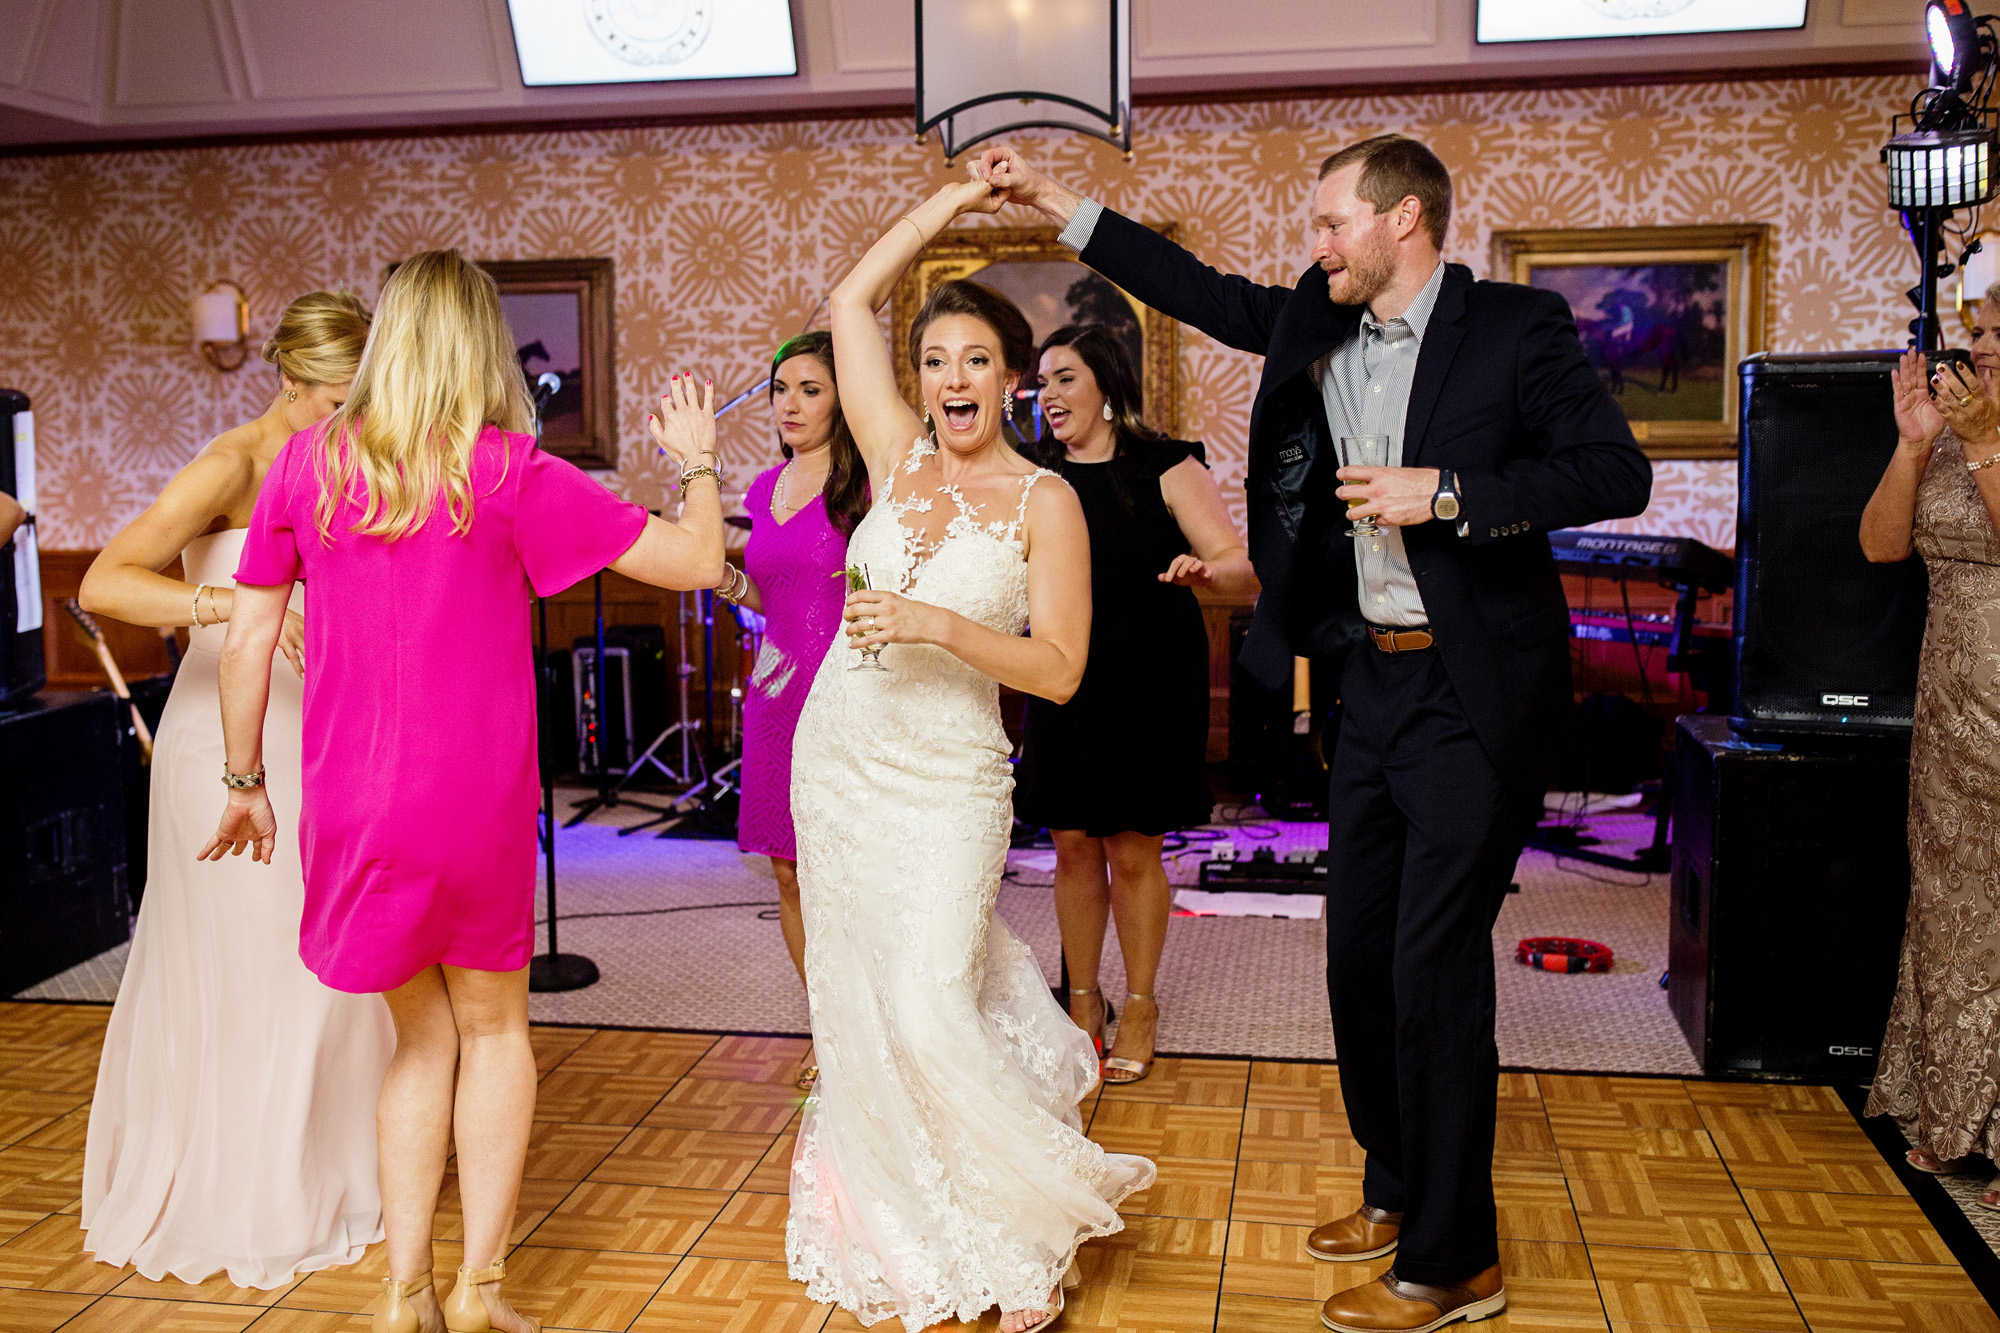 Seriously_Sabrina_Photography_Lexington_Kentucky_Downtown_Keeneland_Clubhouse_Wedding_Spitzer_143.jpg